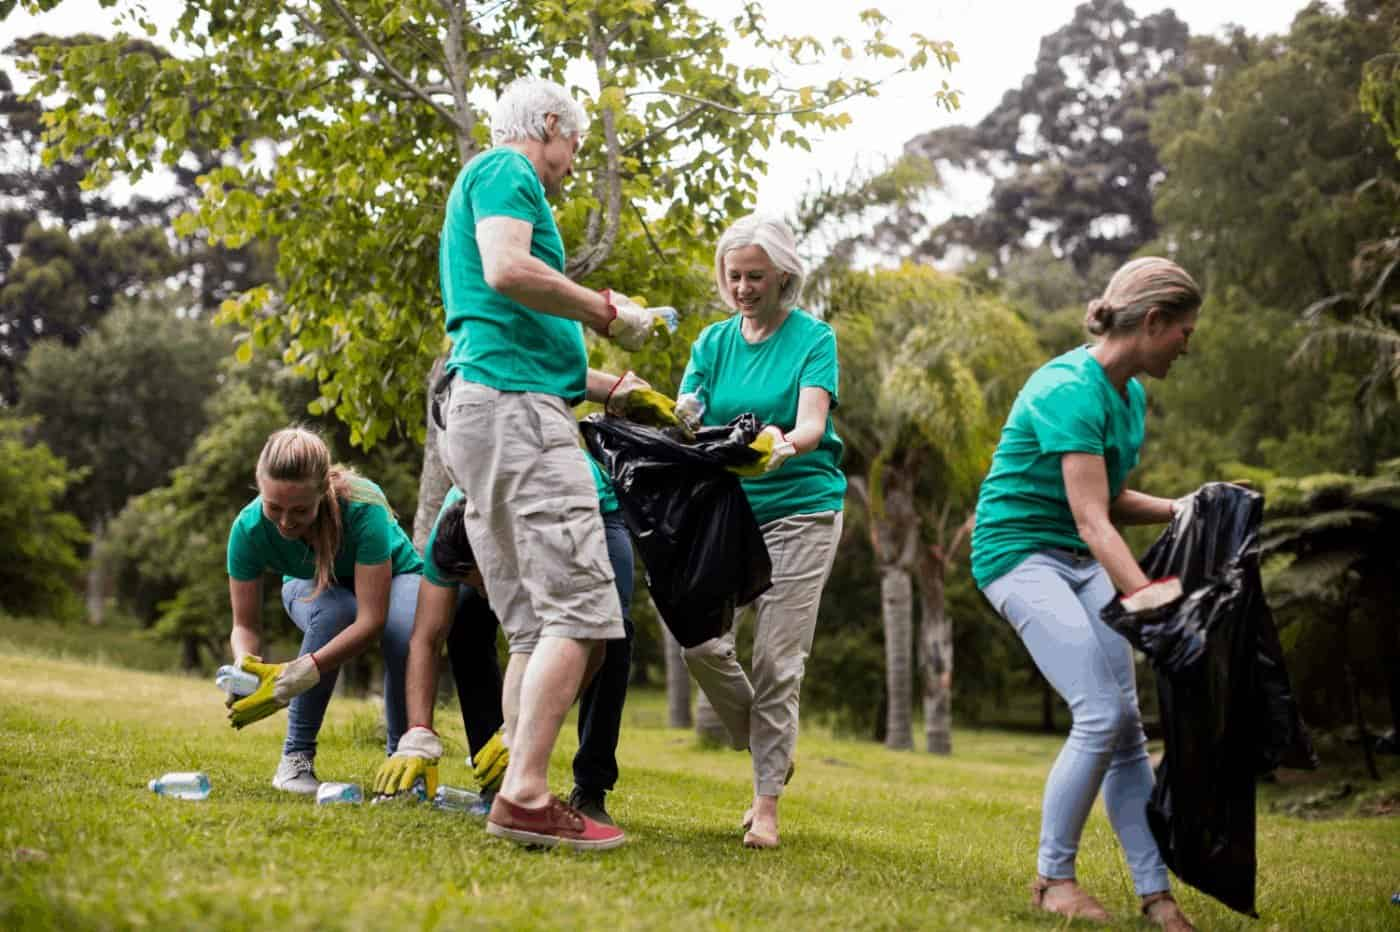 Picking Up Litter Keeping Your Environment Clean